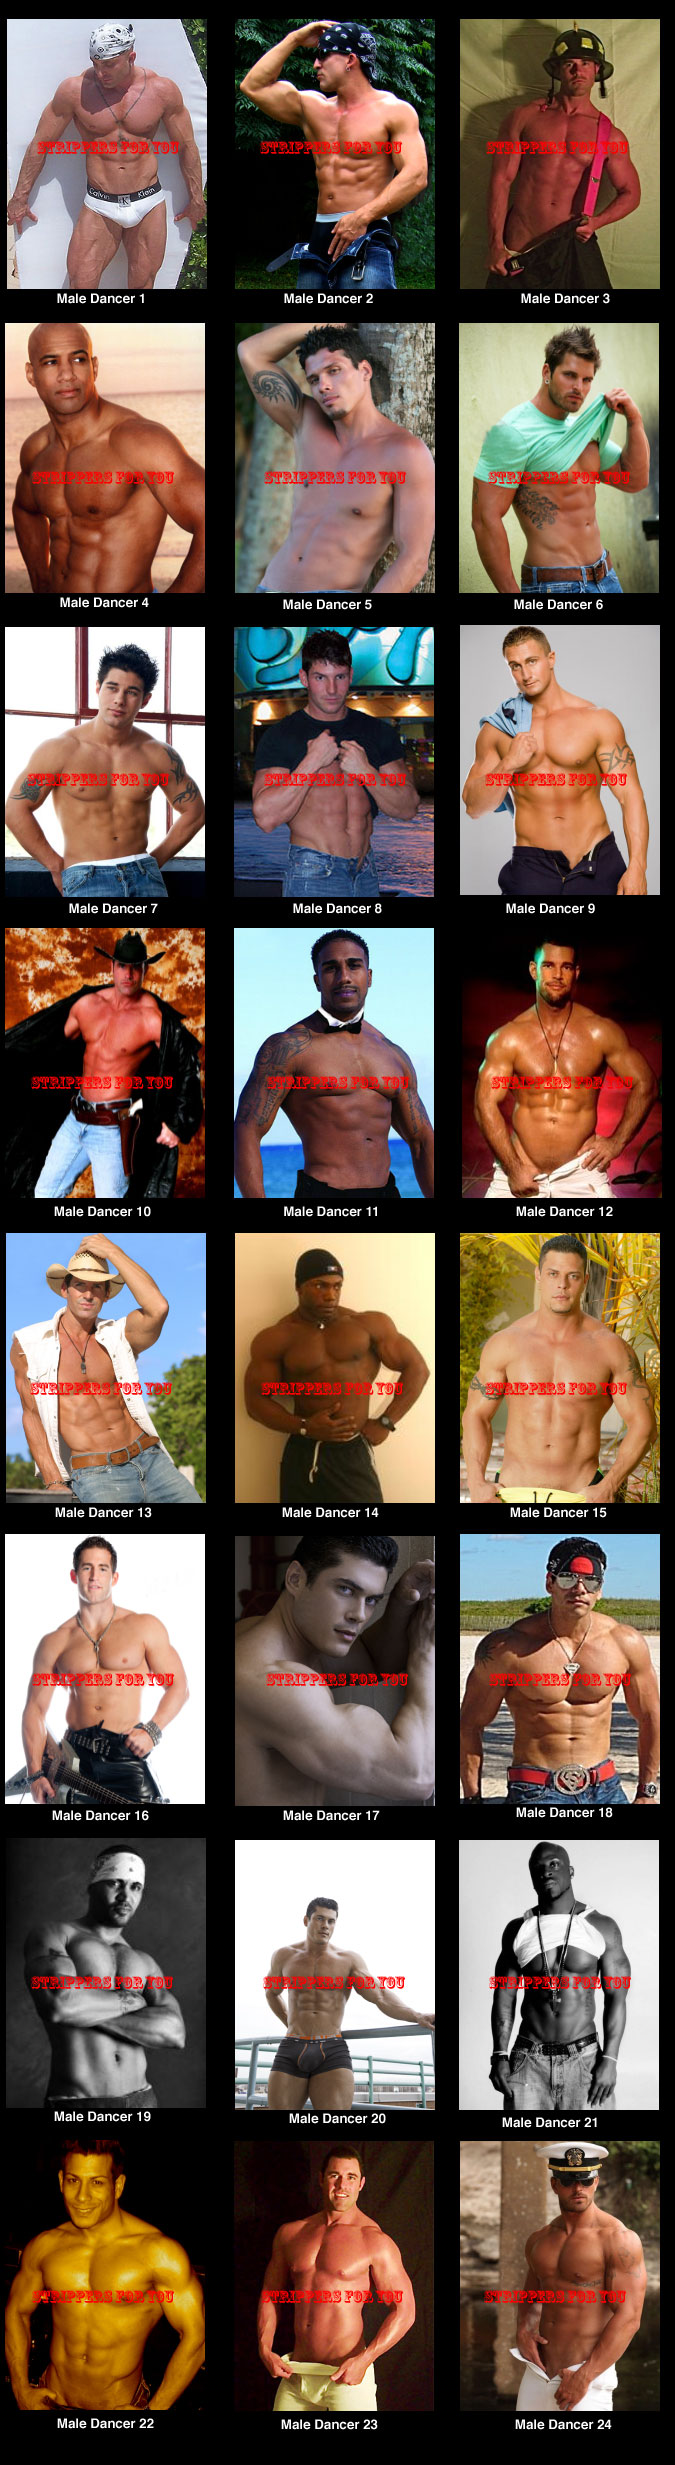 San Antonio male strippers